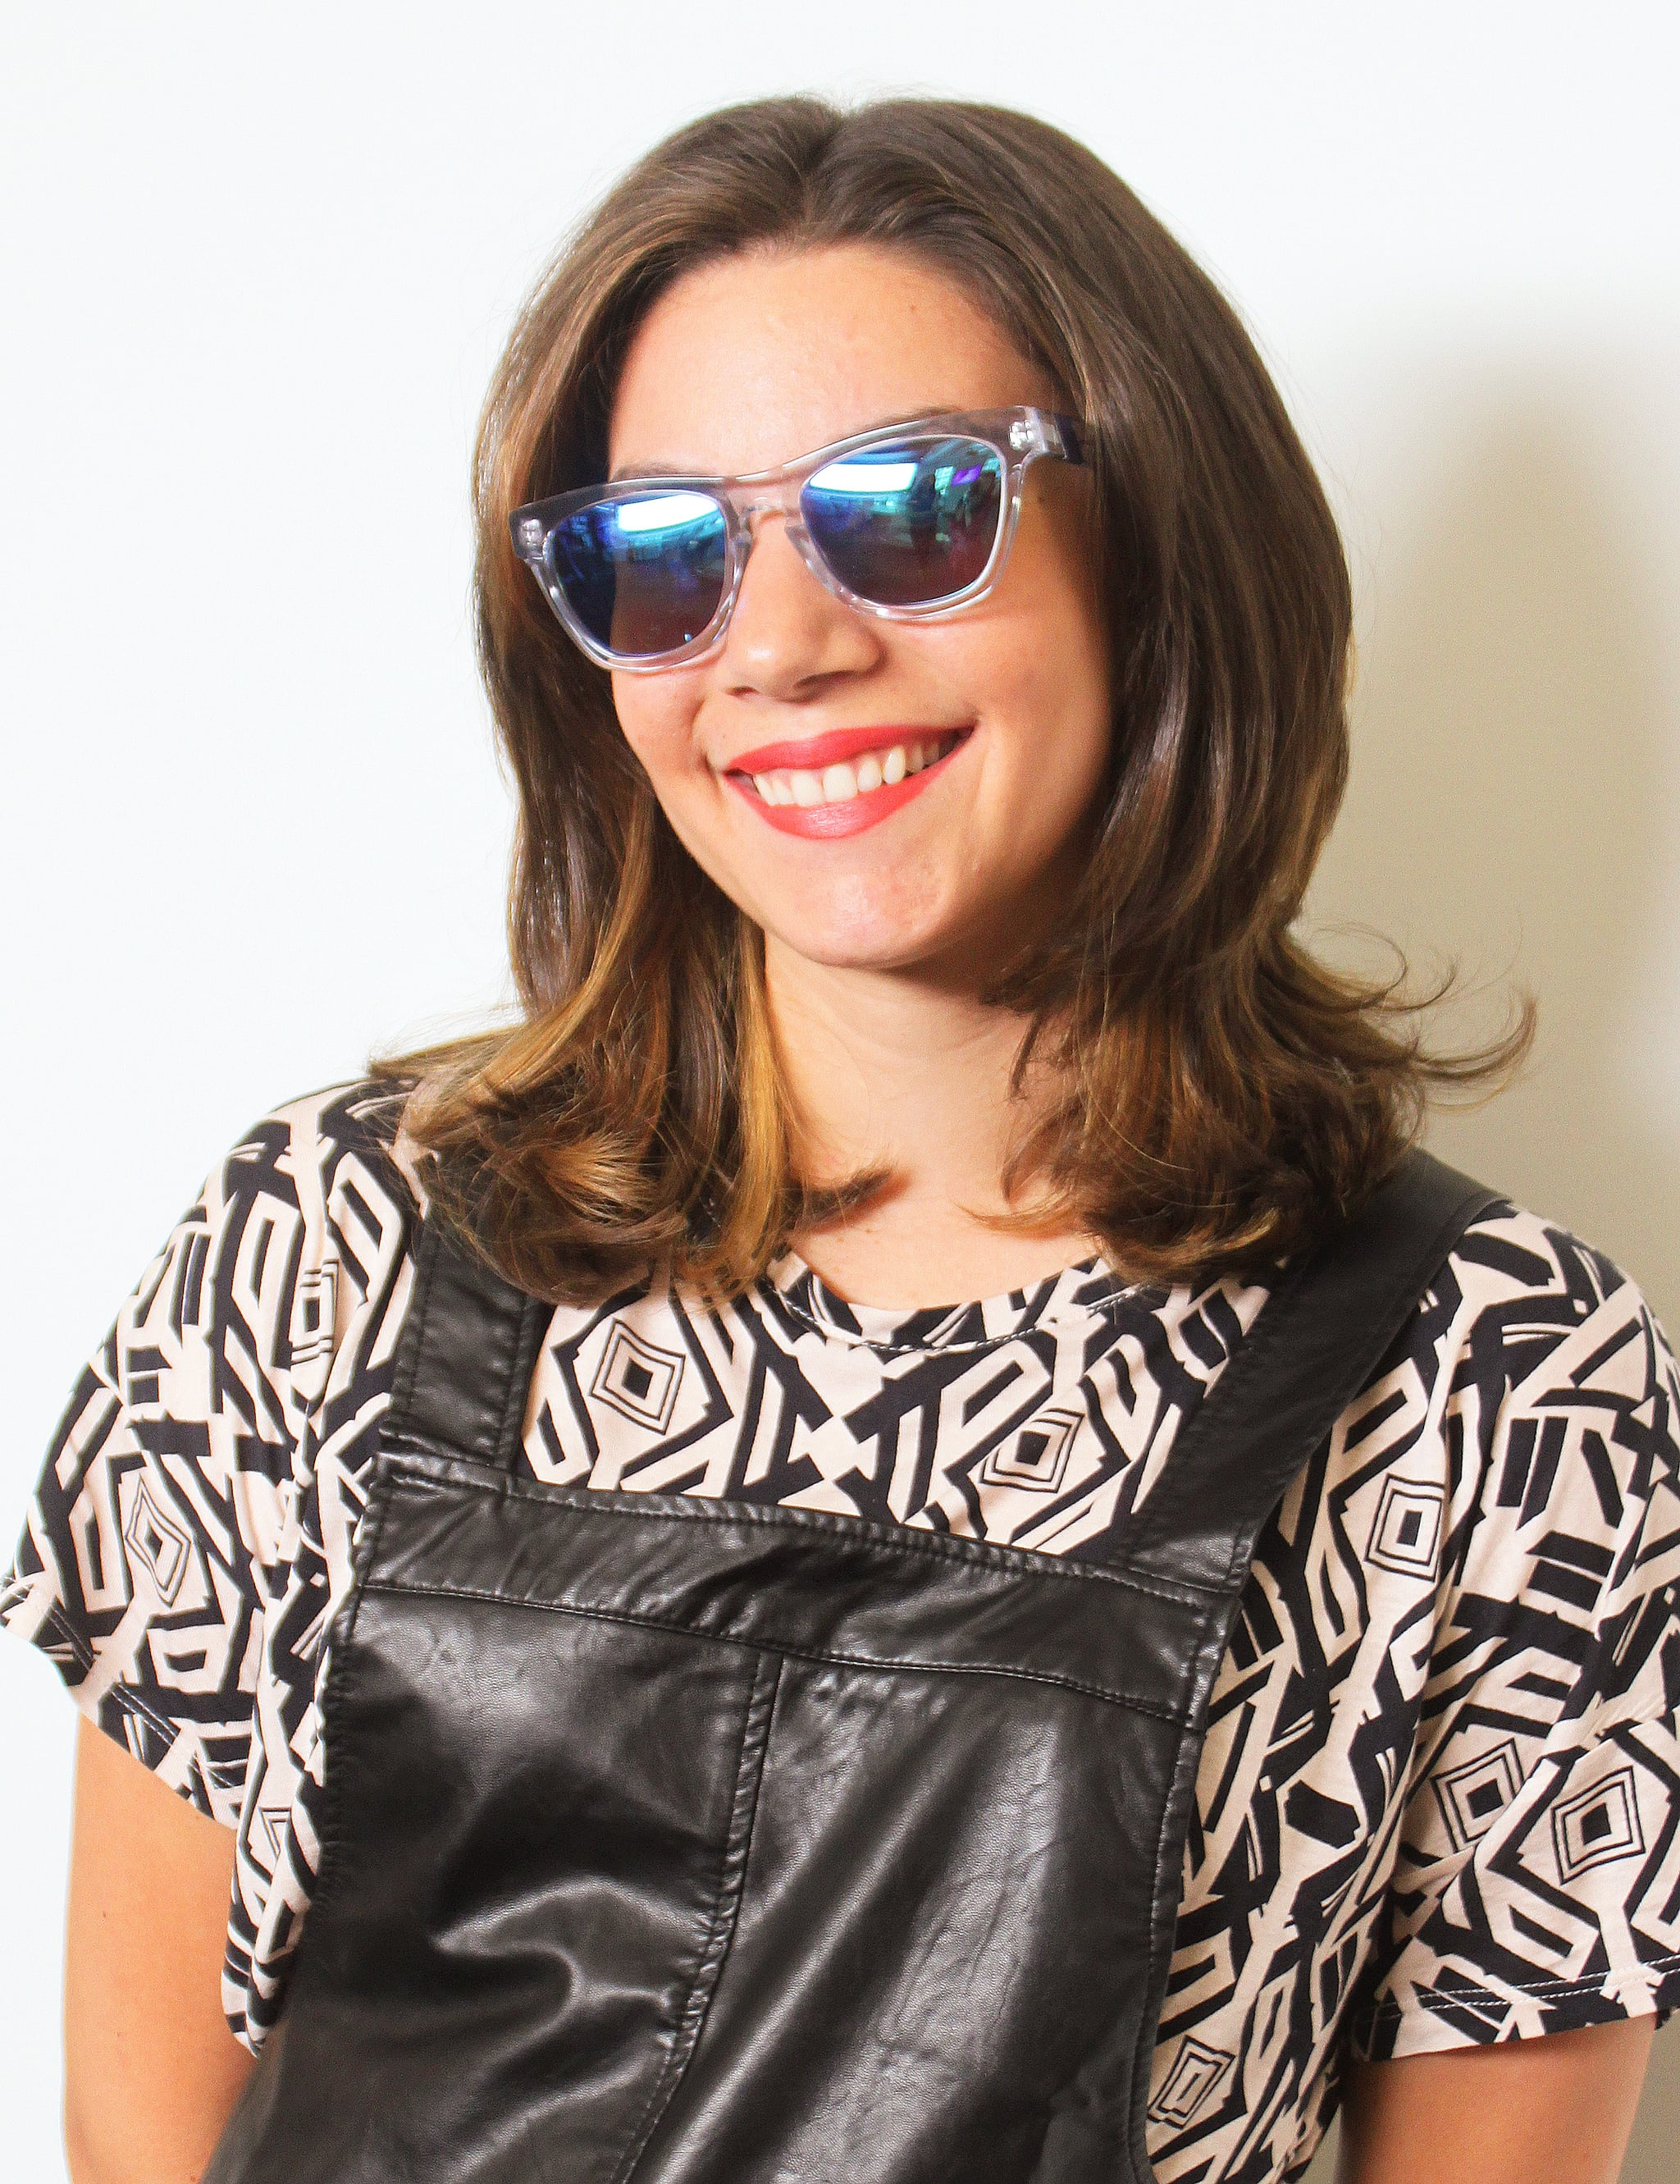 We're all about mirrored sunglasses, especially with cool clear legs and frames like on this pair ($153) from celeb-favorite Westward Leaning. The blue in the reflective lenses looks best with a contrasting lip color like MAC Neon Orange lipstick ($16).